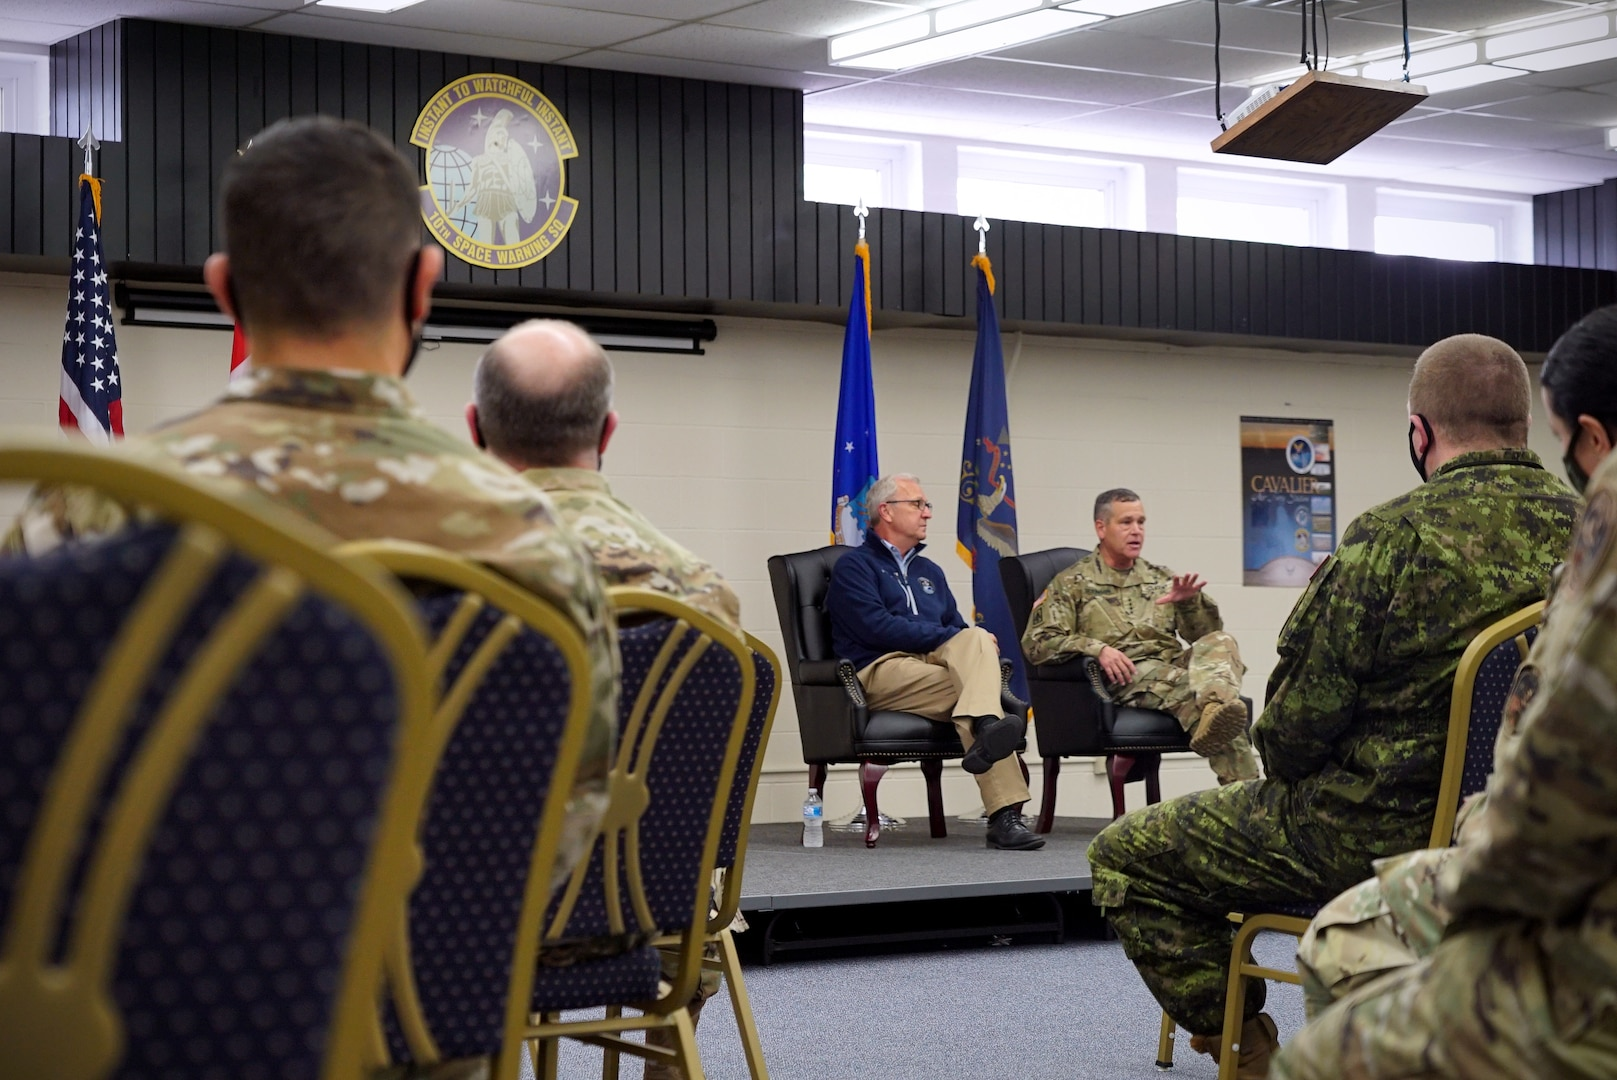 An audience of military members sit with their backs to the foreground of a photo that focuses on two men sitting on-stage in dark blue chairs.